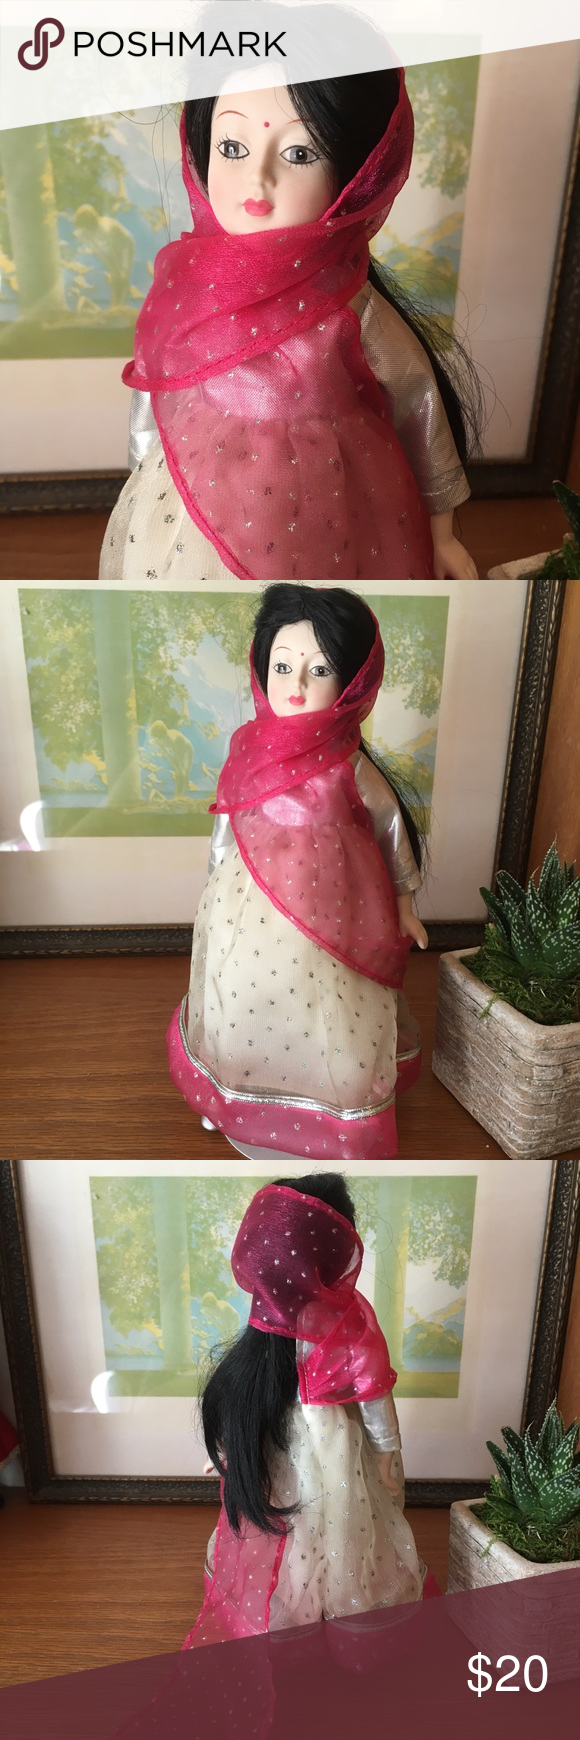 "Danbury Mint Bride Doll Shanti of India 9"" Danbury Mint Bride Dolls of the World ""Shanti of India"" doll. Very good vintage condition. Vintage Accents Decor #bridedolls"